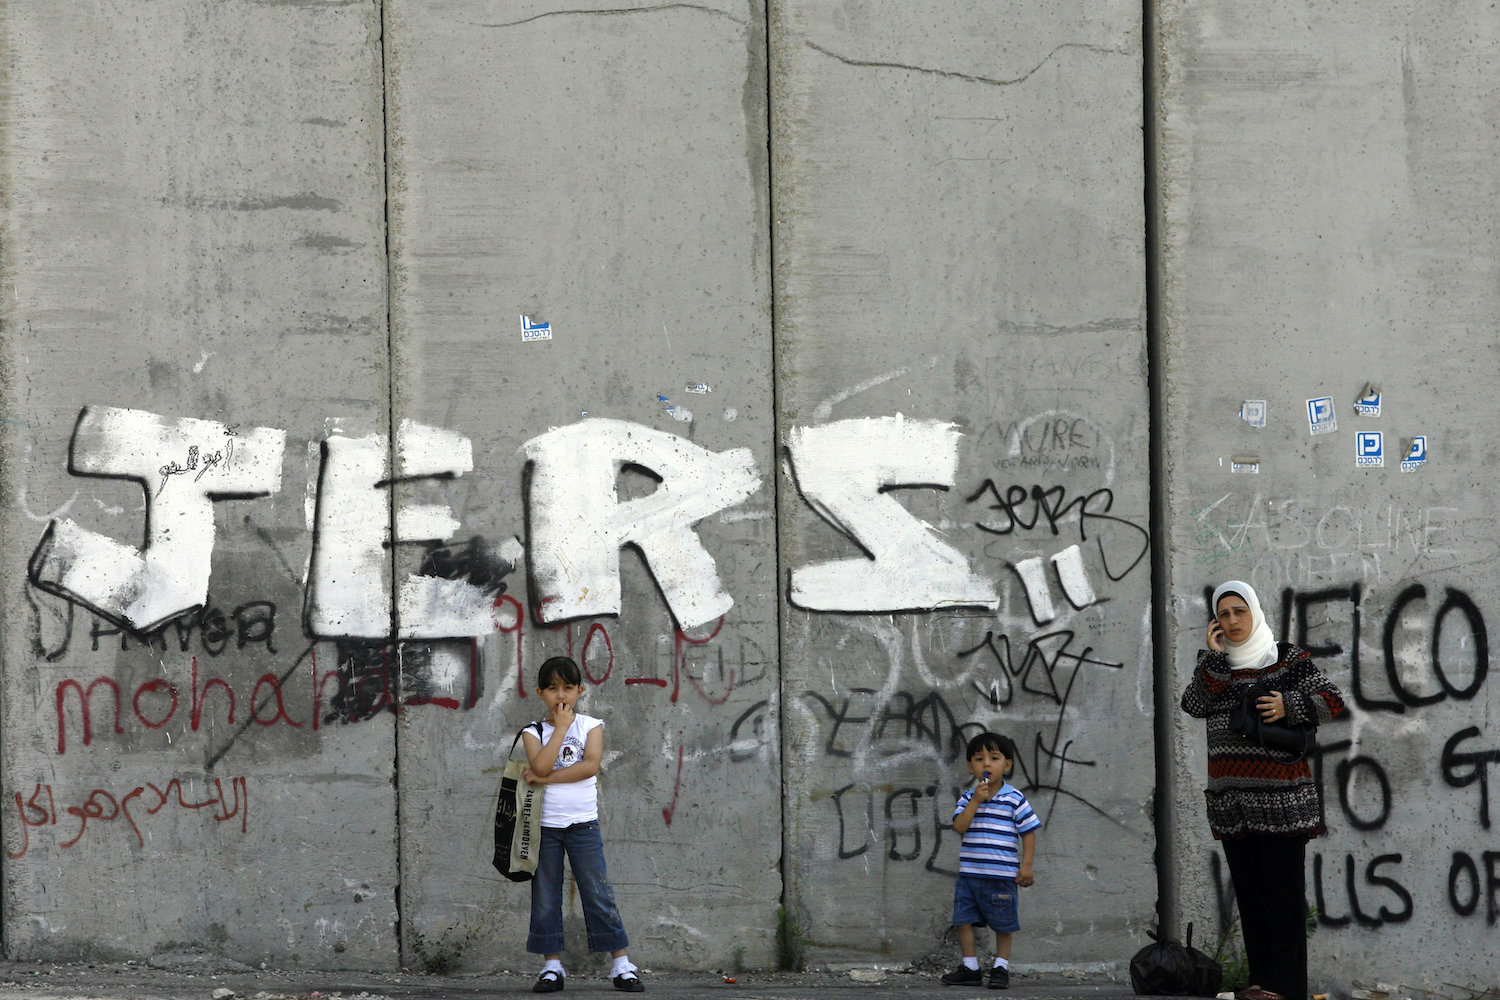 A Palestinian mother and her children stand by the separation wall in the East Jerusalem village of Abu Dis, August 08, 2008. (Michal Fattal/Flash90)